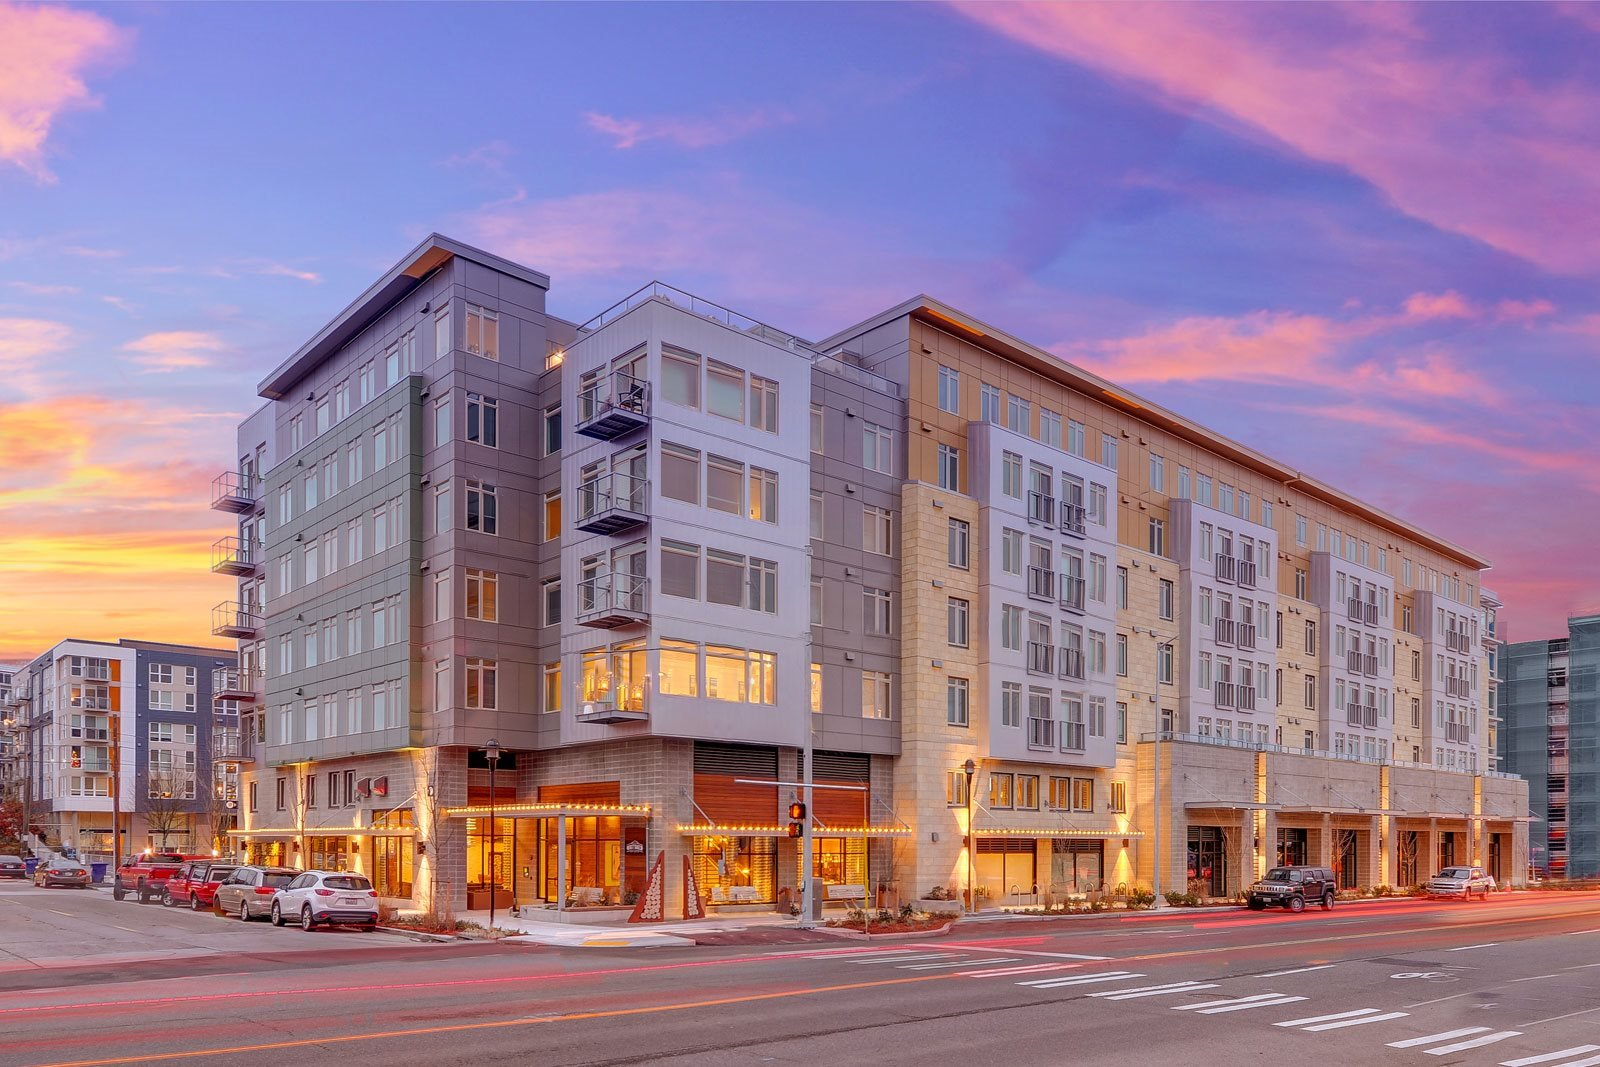 Endless Options for Shopping and Exploring at The Whittaker, 98116, WA